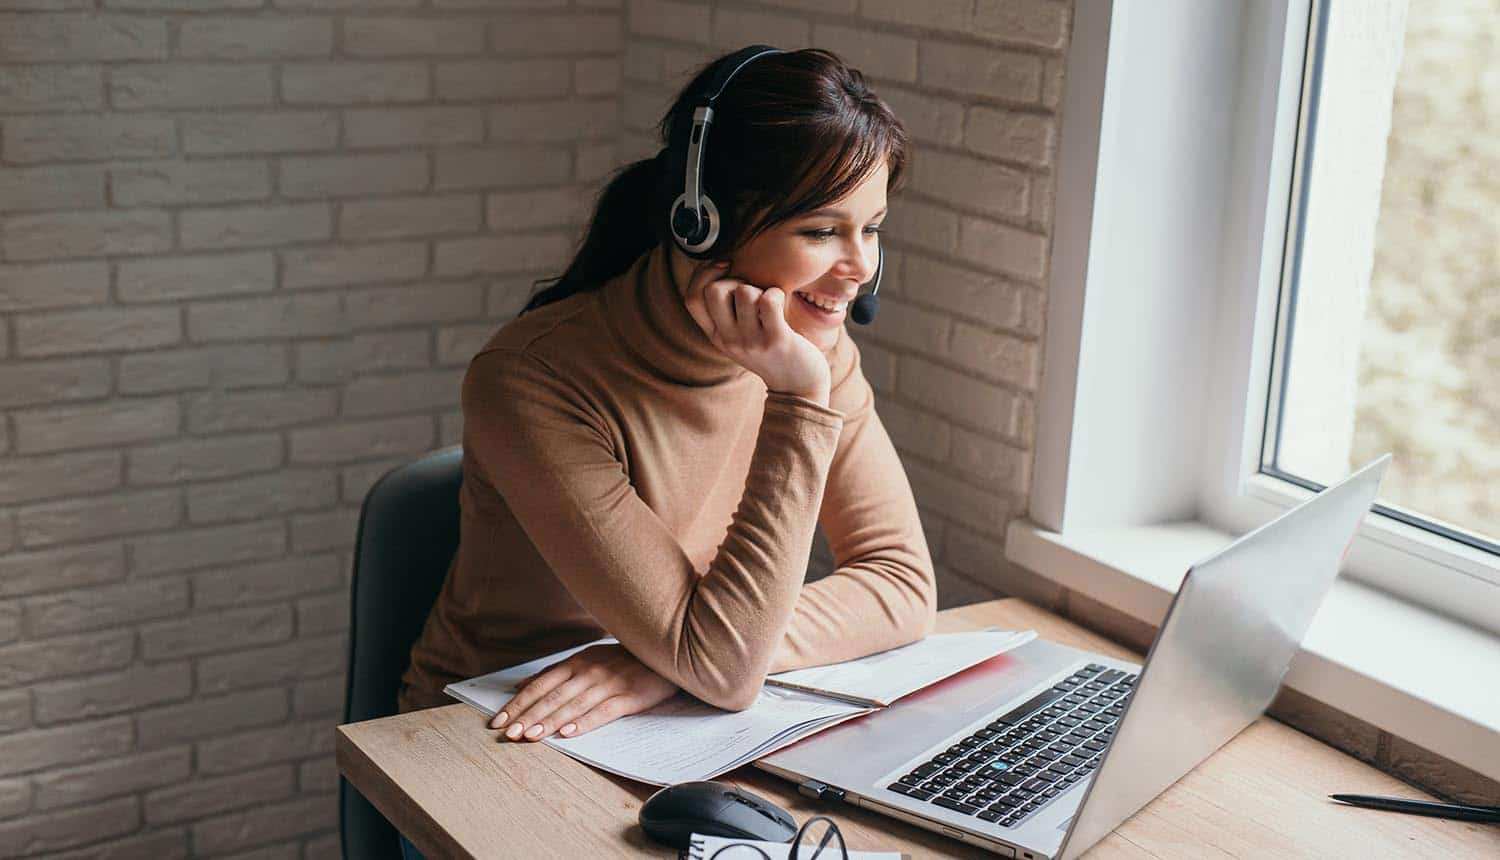 Young woman having video conferencing call showing cybersecurity shortcuts while remote working